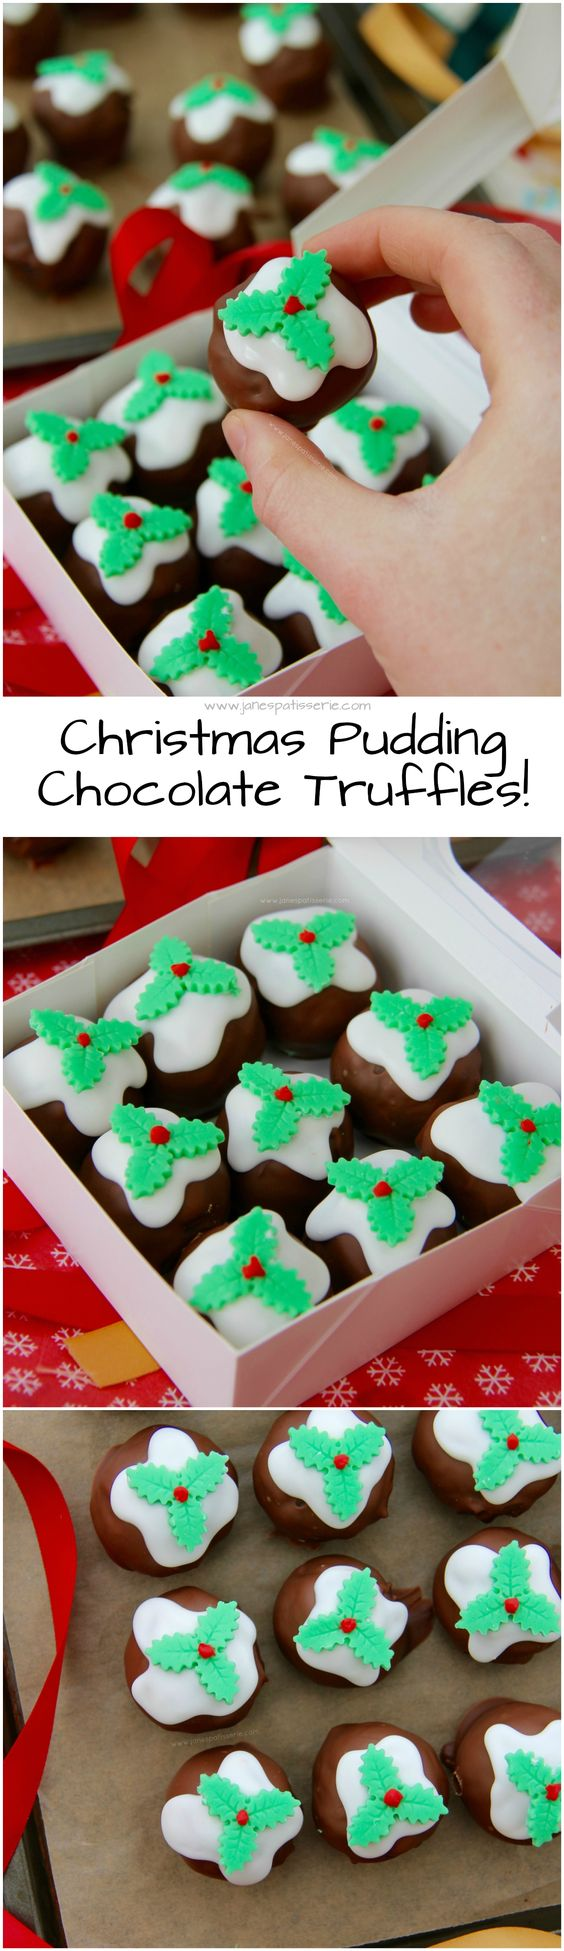 Christmas Pudding Chocolate Truffles!! Deliciously Chocolatey Truffles made in to mini Christmas Puddings! Cute little gifts for the Festive season!: